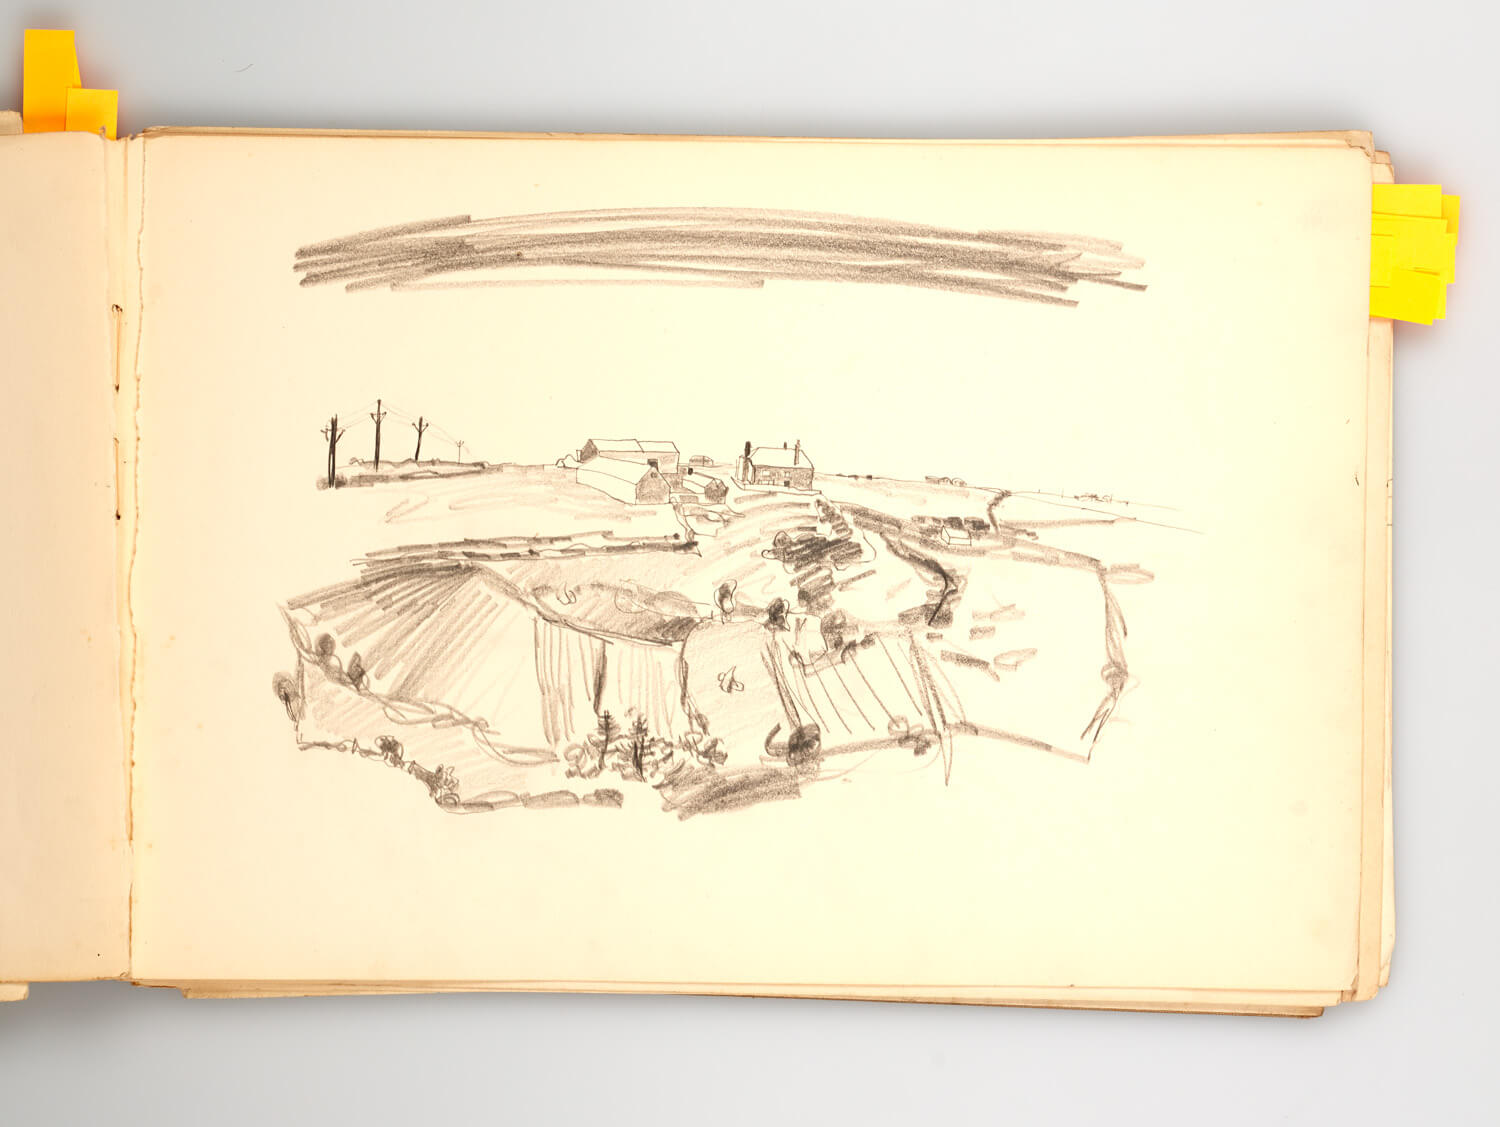 JB275 - Cornish Sketch Book 1948 - 1948 - 25 x 36.5 cm - Pencil